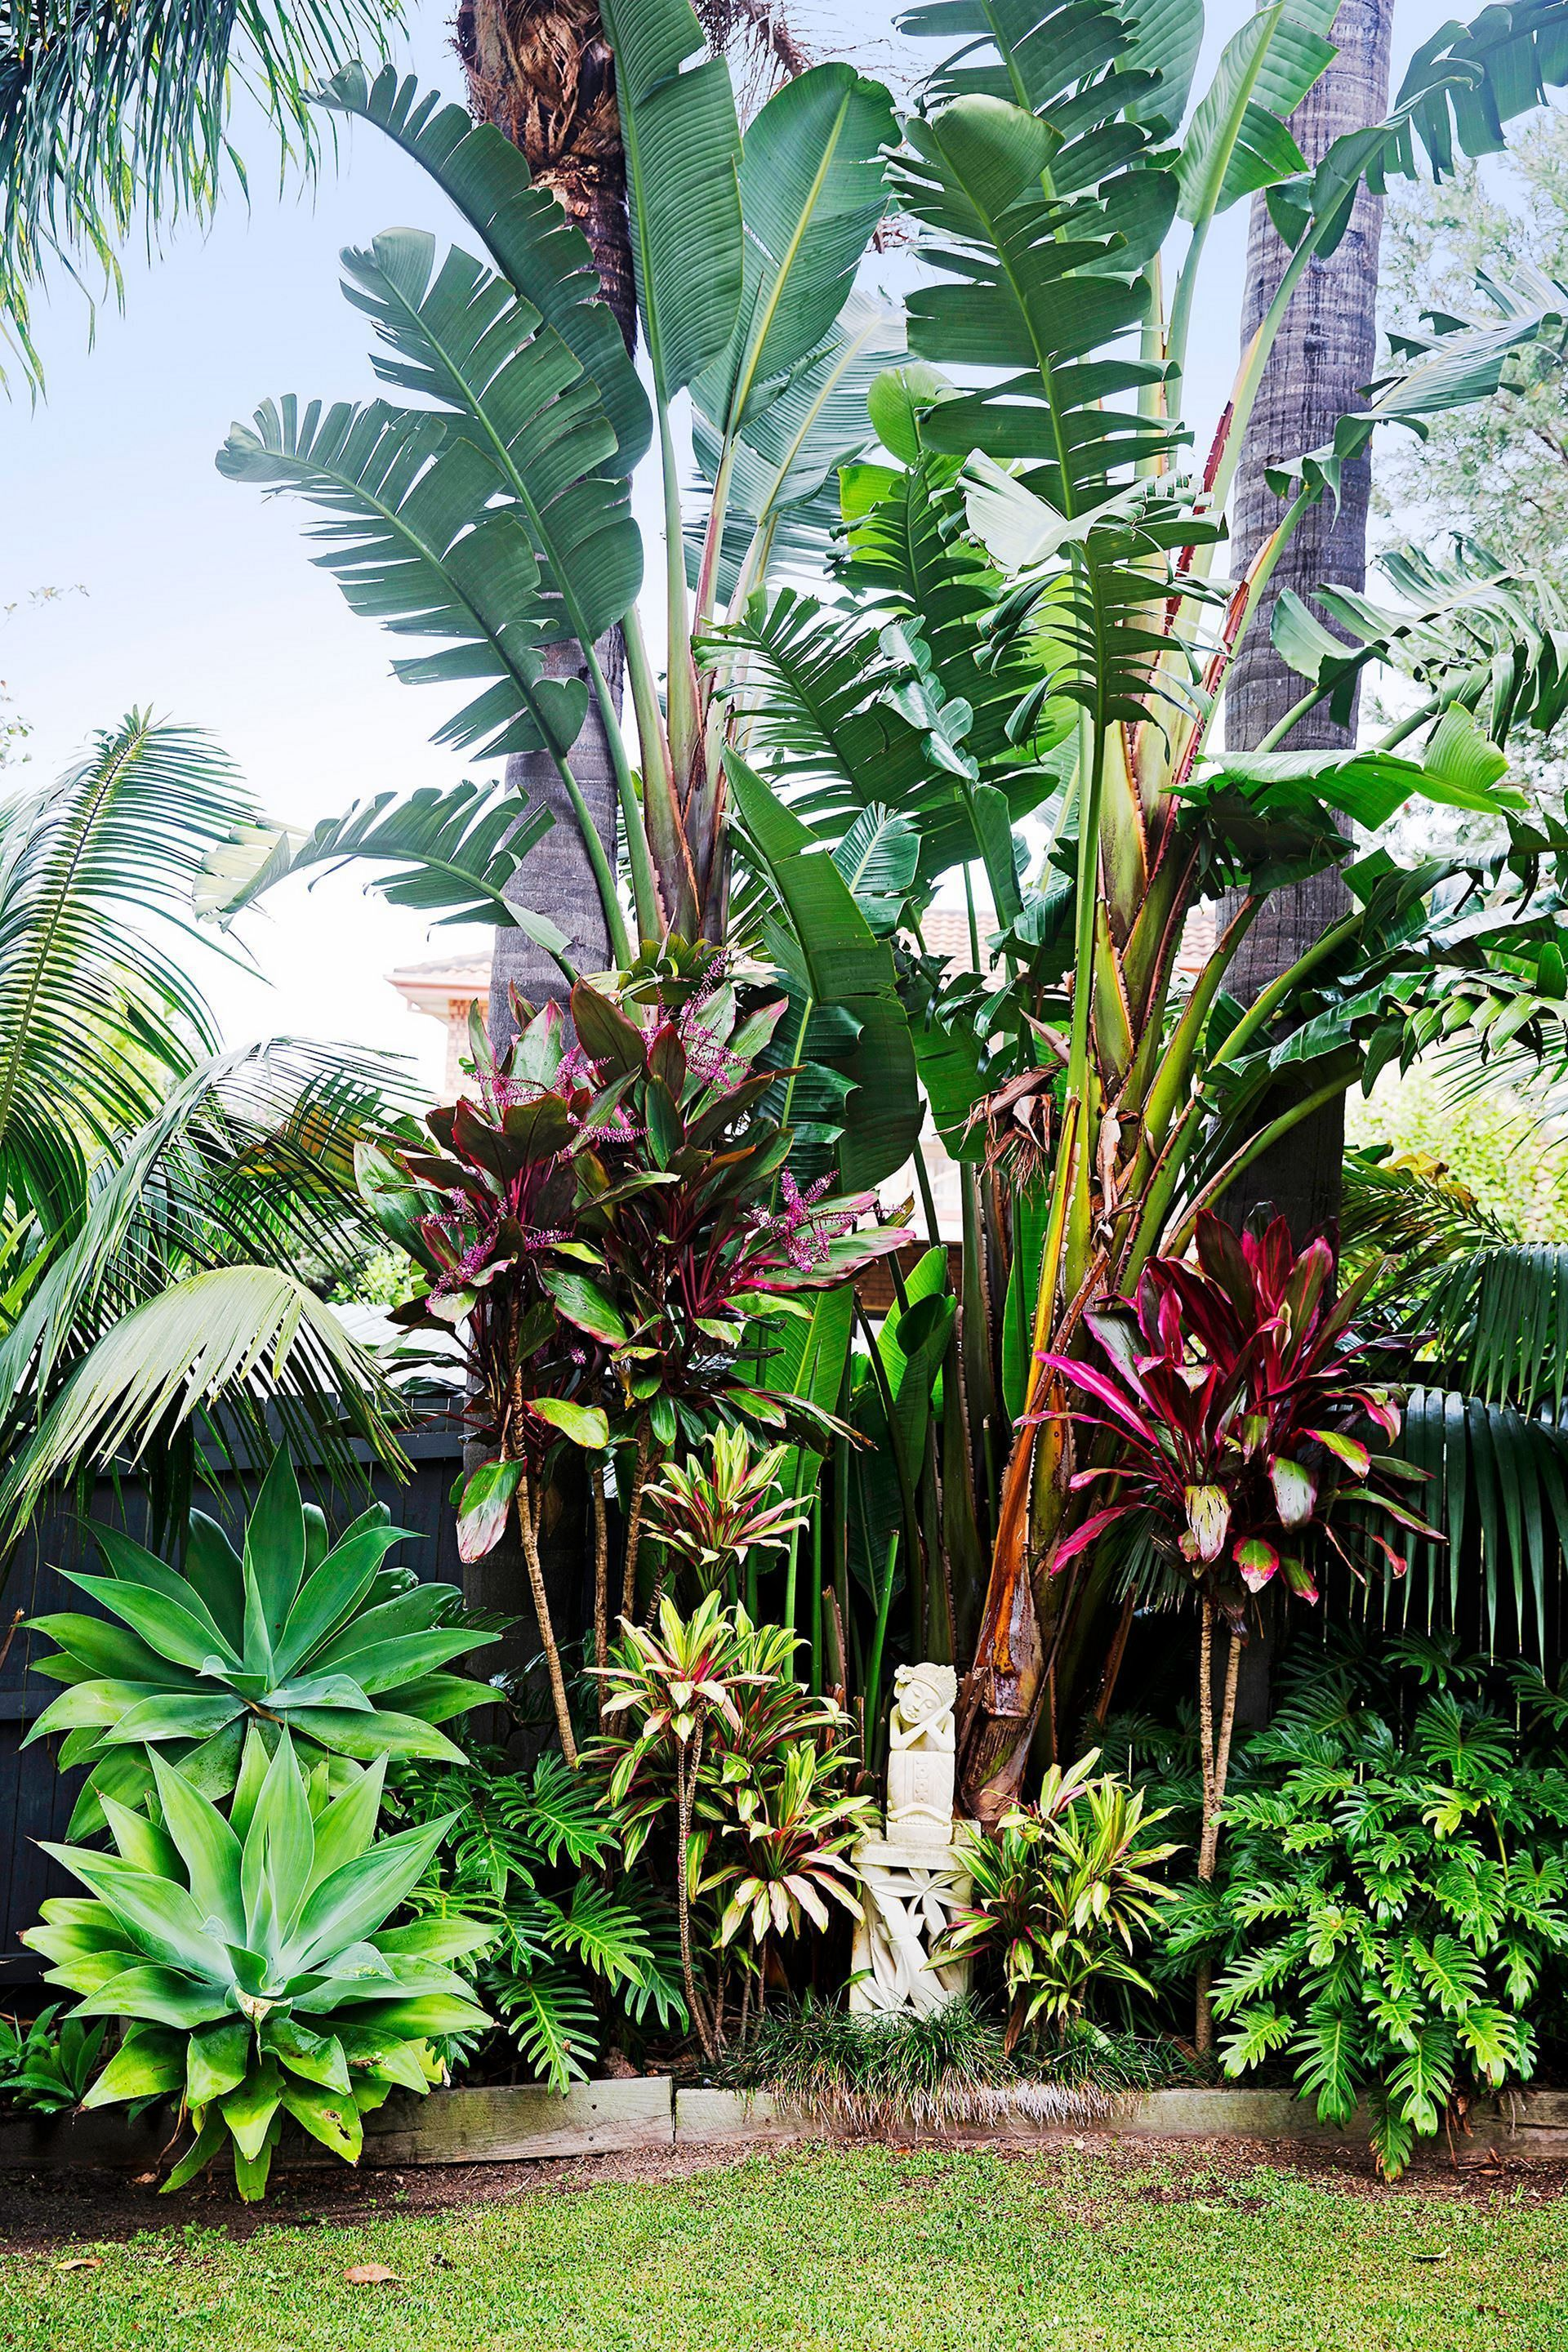 15 Beautiful Tropical Front Yard Landscape Ideas To Make Your Home More Awesome Freshouz Com Tropical Landscape Design Tropical Garden Design Tropical Landscaping